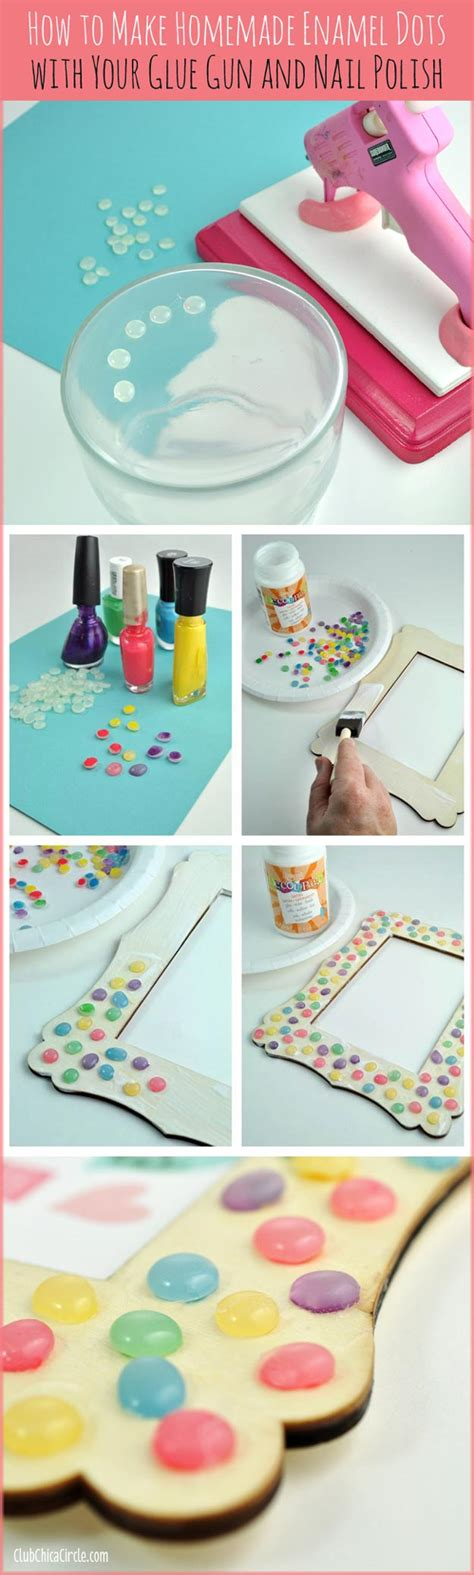 diy craft projects 31 incredibly cool diy crafts using nail polish diy